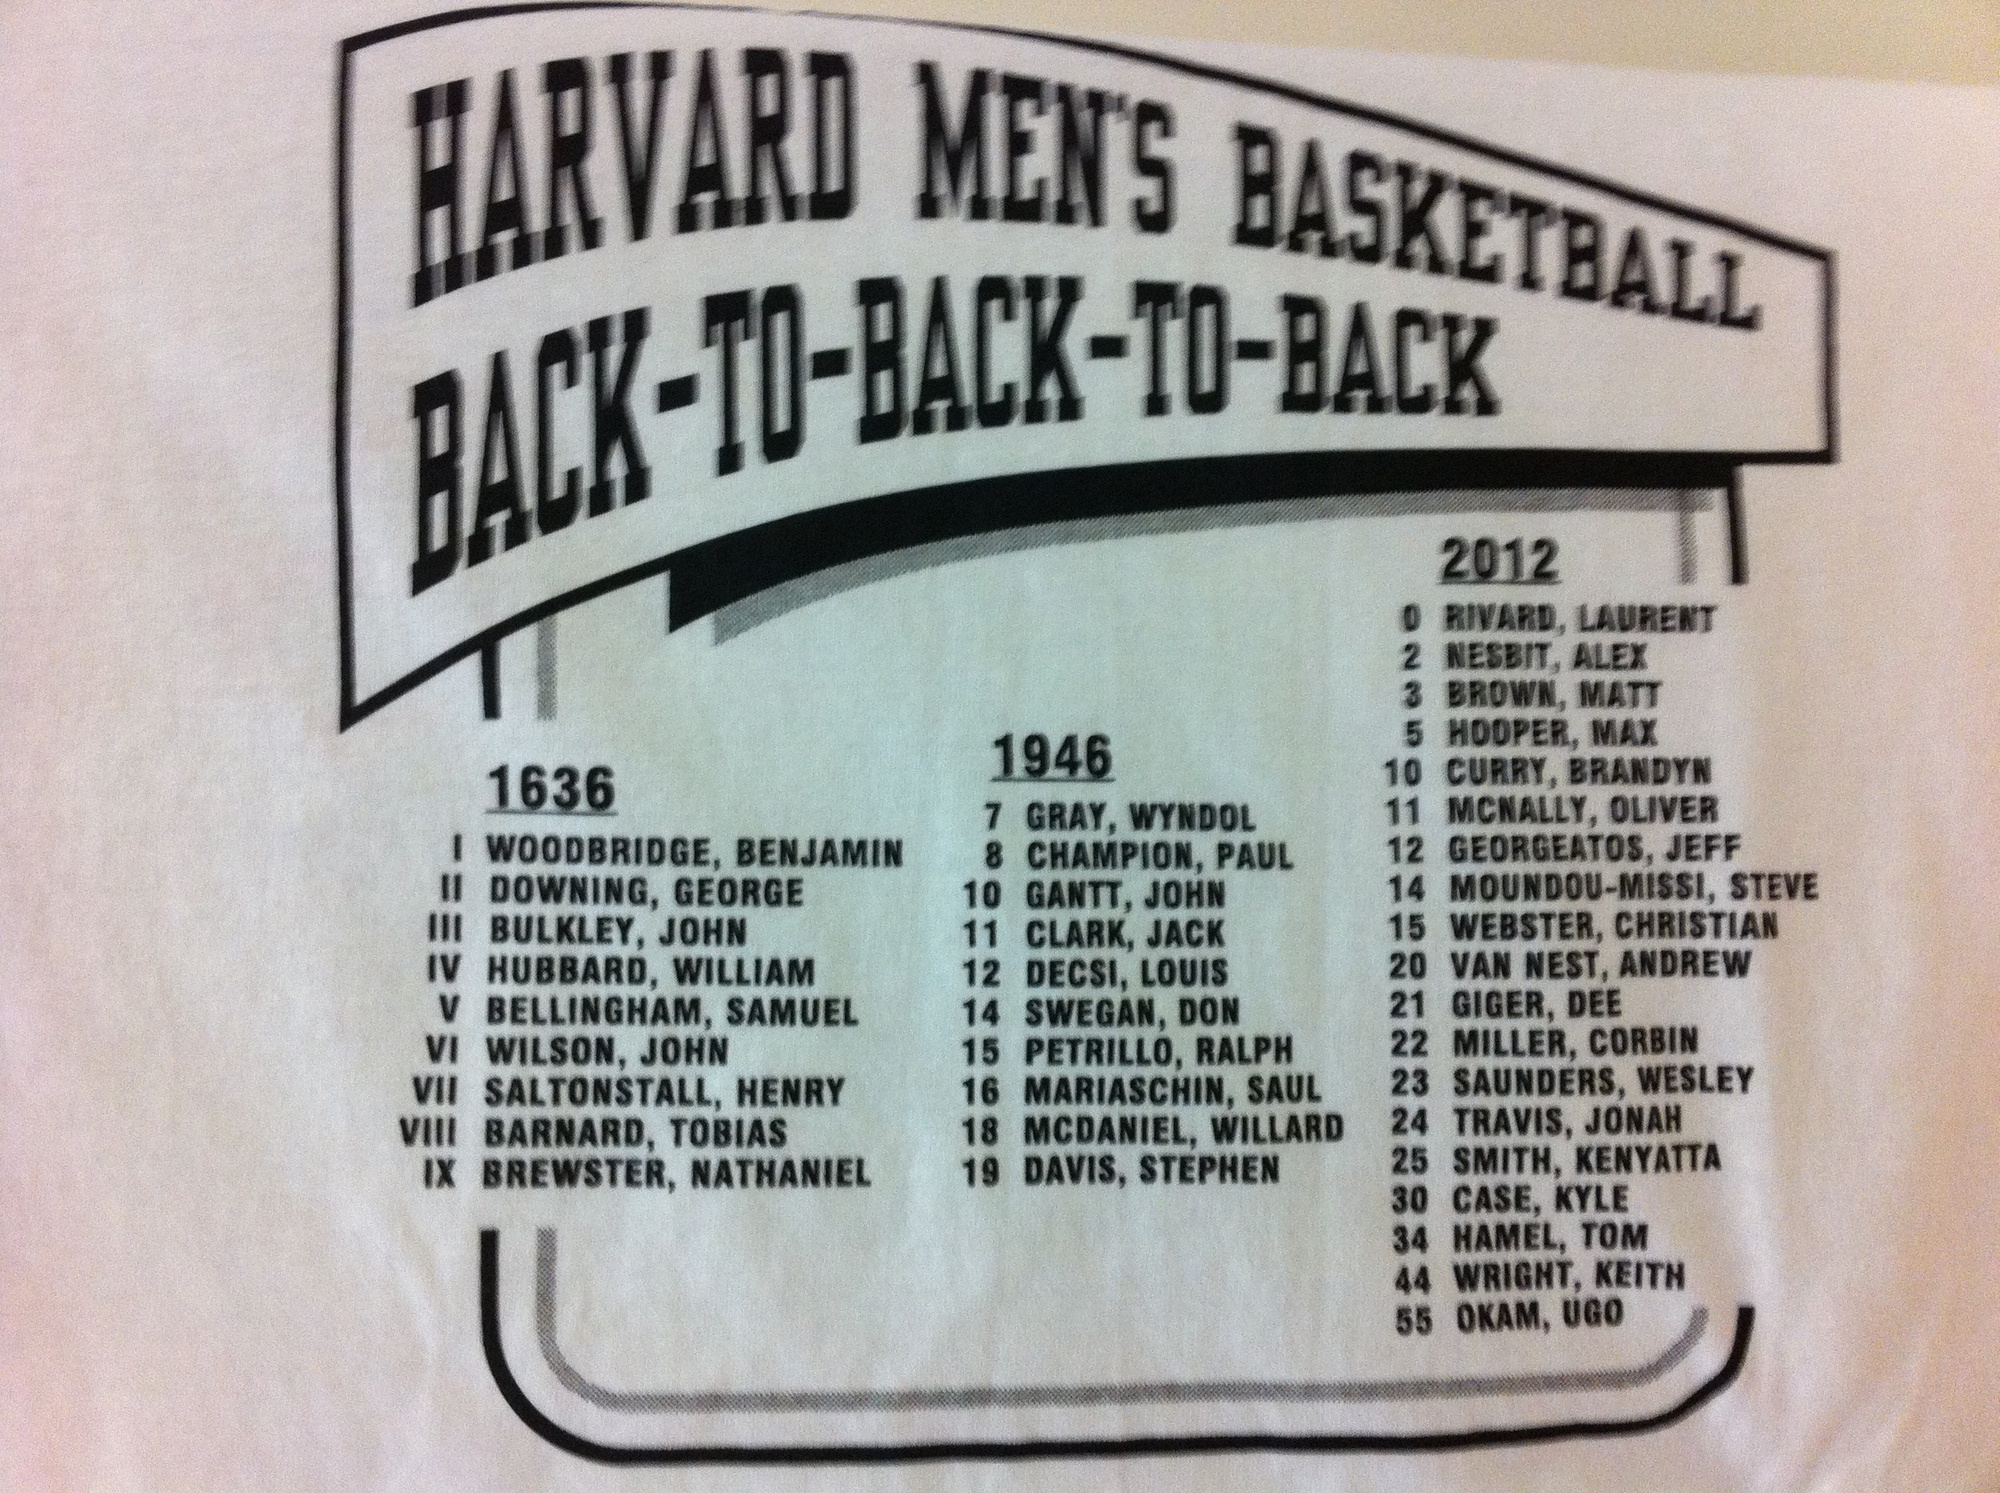 After the Crimson's berth in the 2012 NCAA Tournament, facetious t-shirts were made to commemorate the moment.